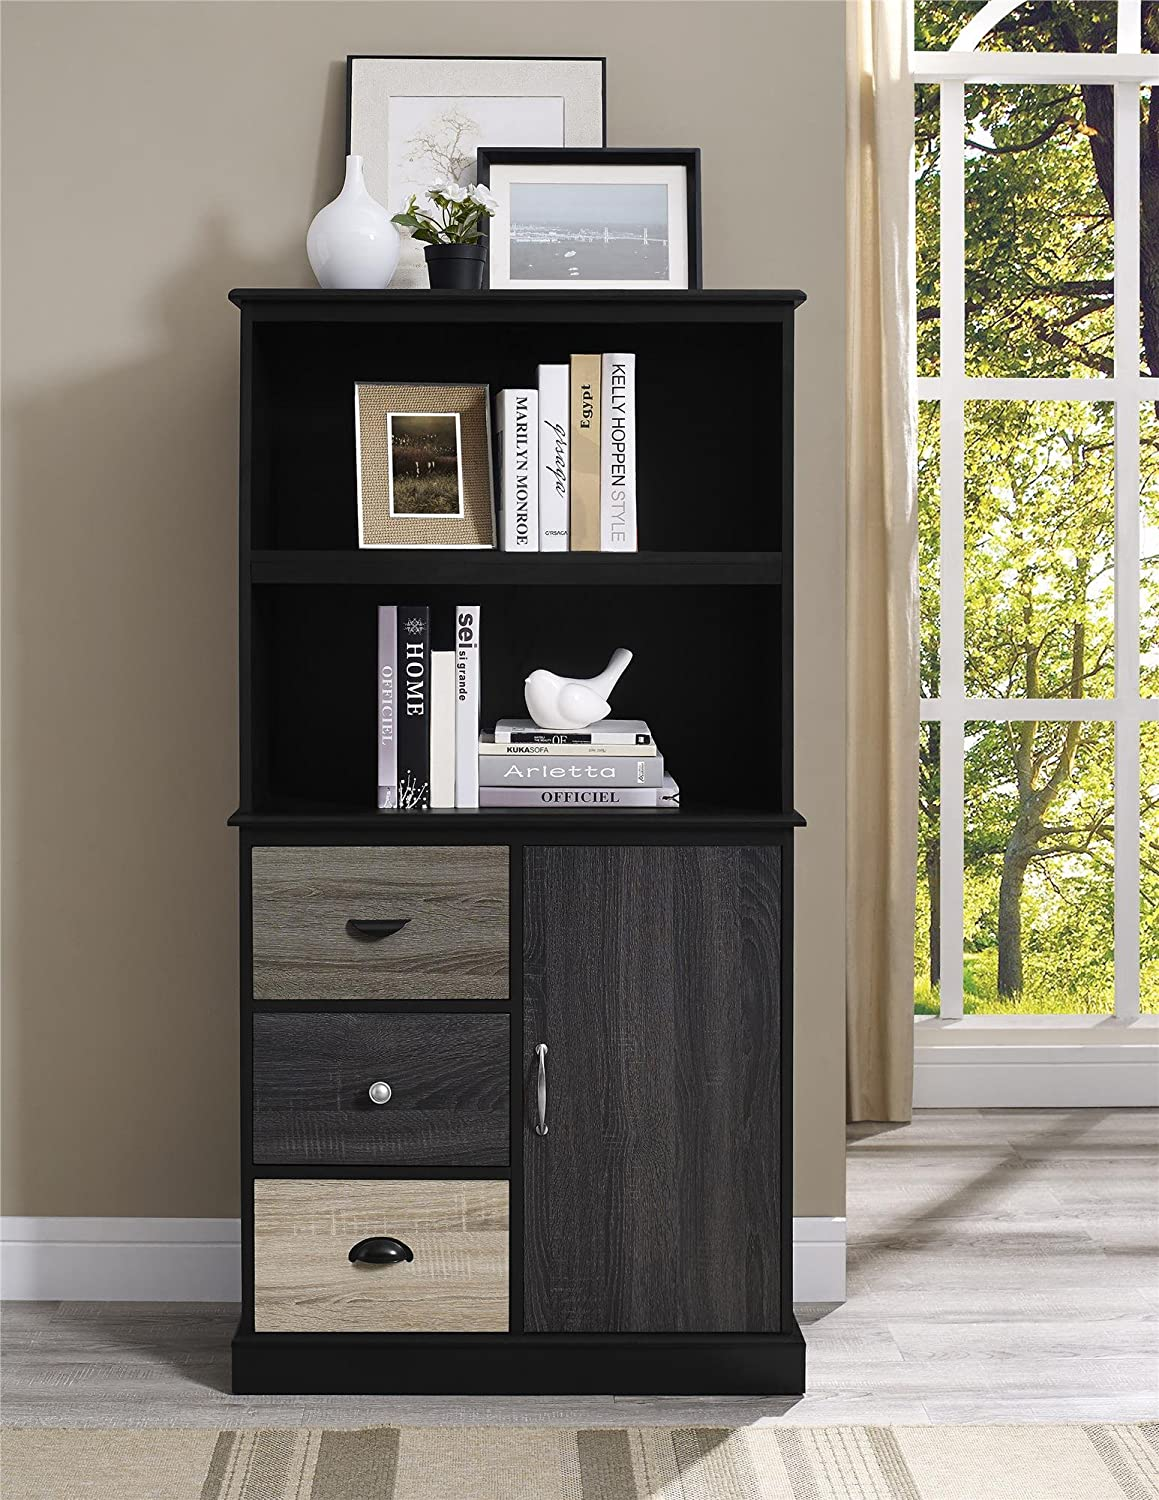 Charmant Amazon.com: Ameriwood Home Mercer Storage Bookcase With Multicolored Door  And Drawer Fronts, Black: Kitchen U0026 Dining